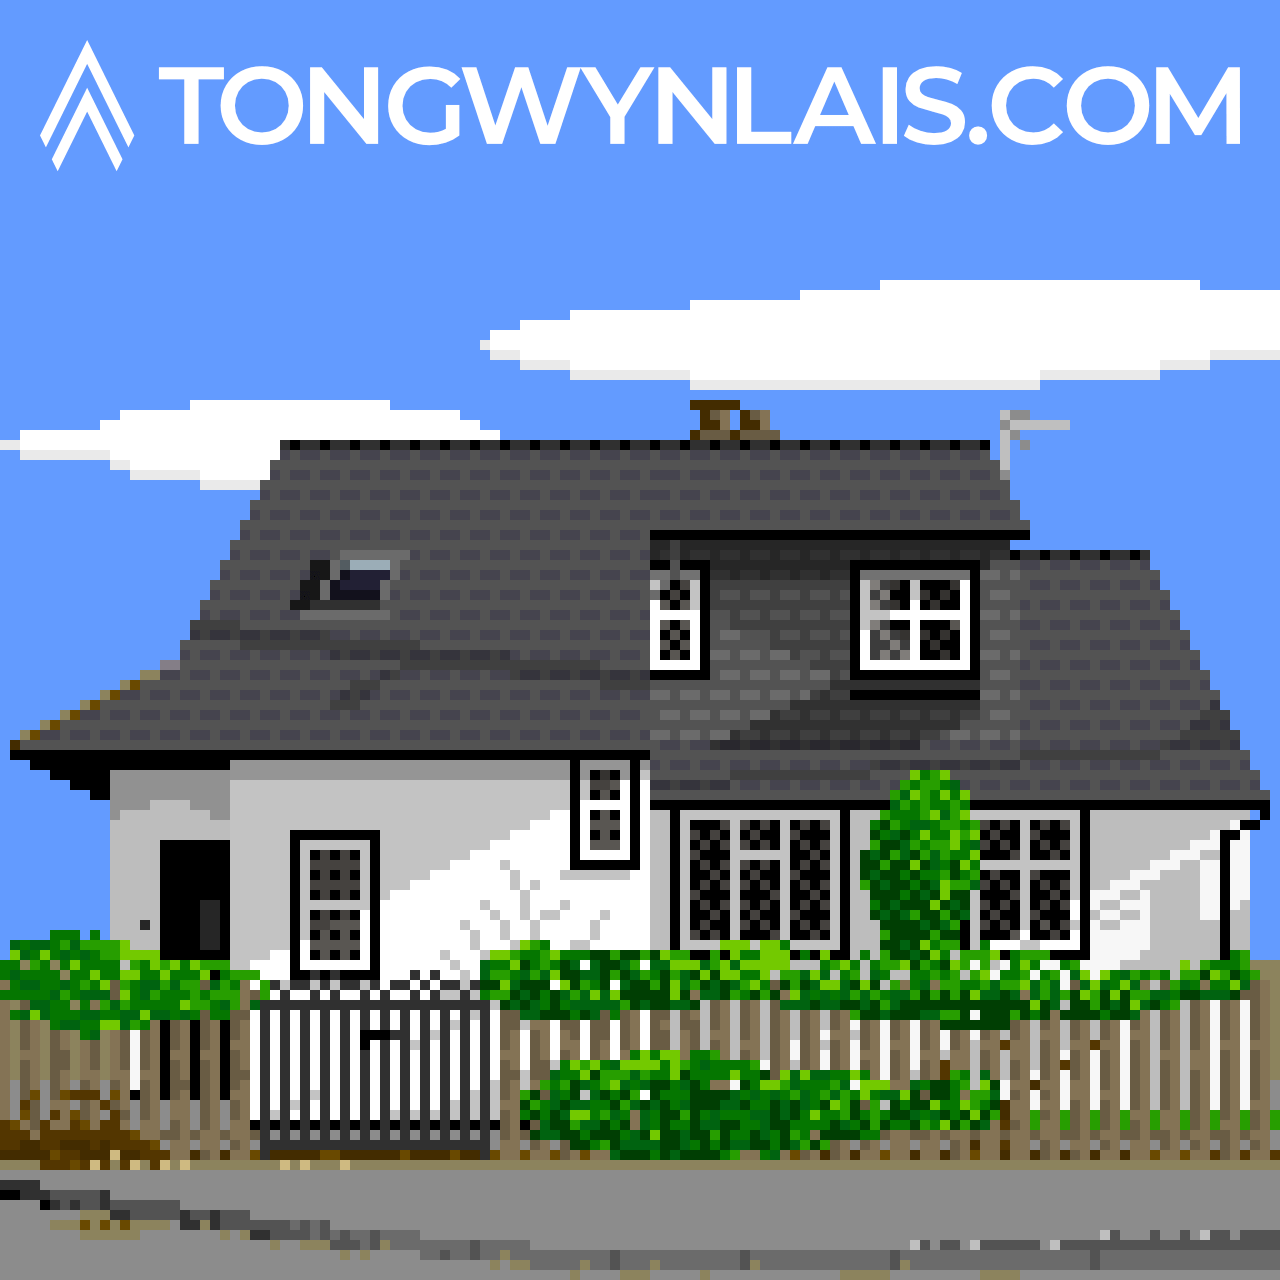 Pixel art illustration of a house